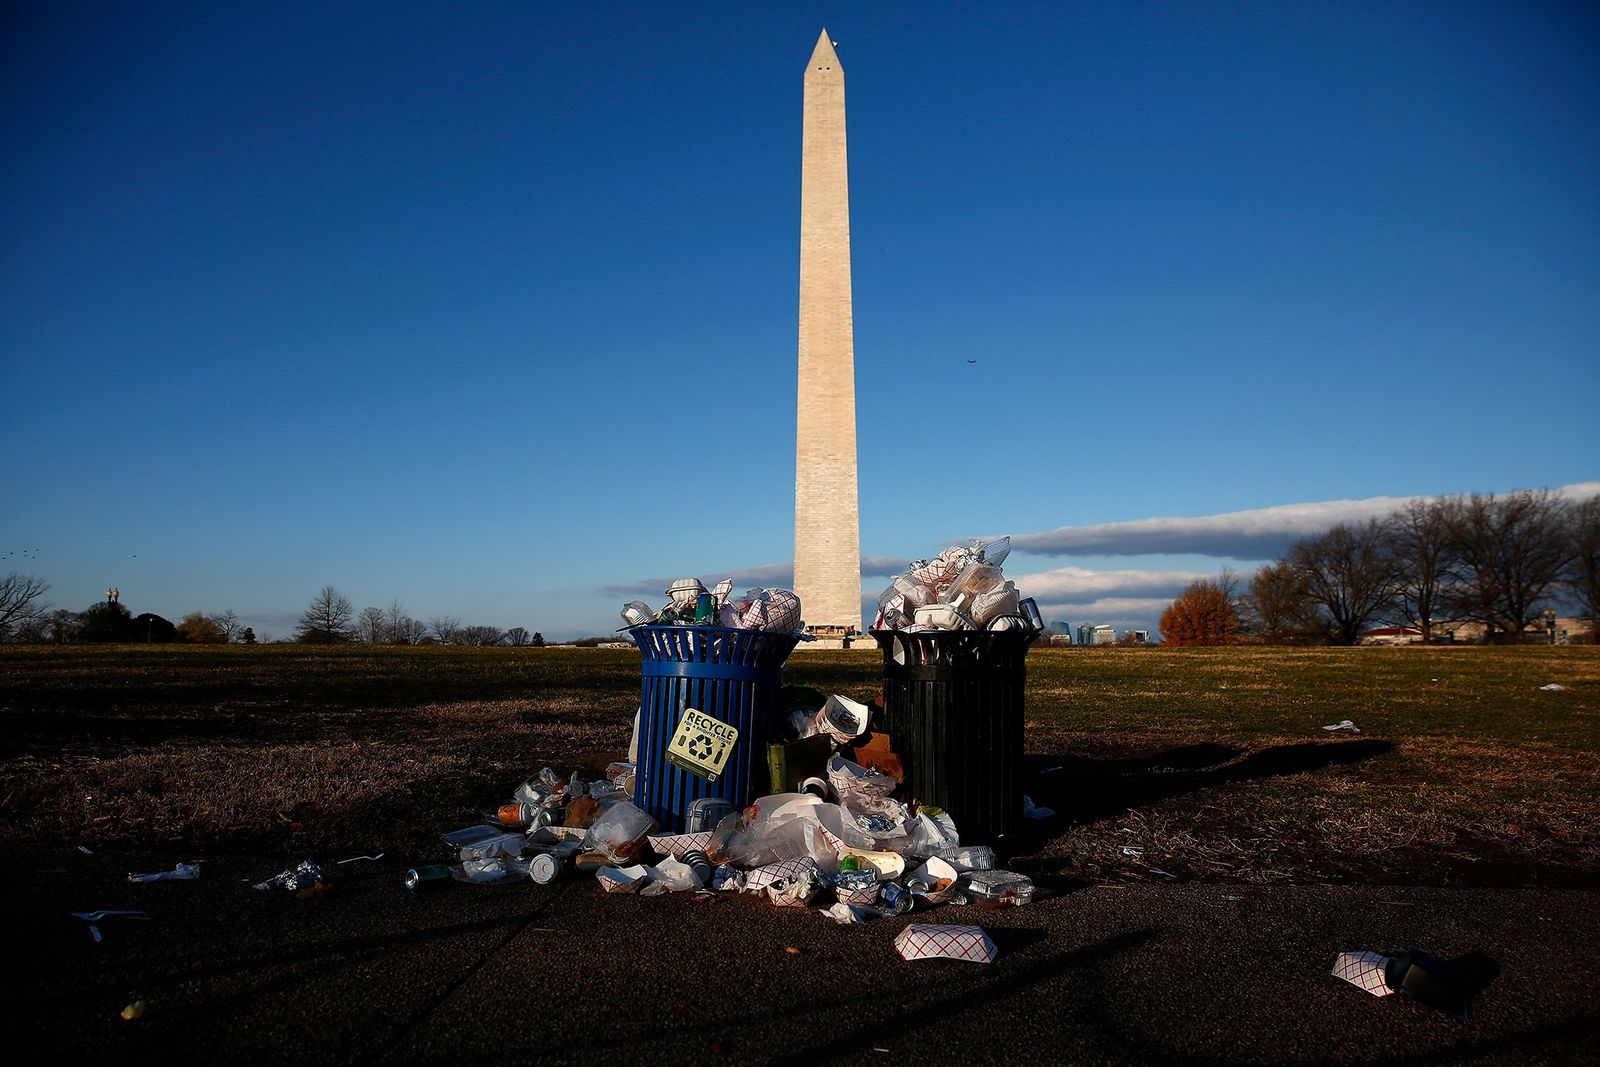 National parks face years of damage from government shutdown